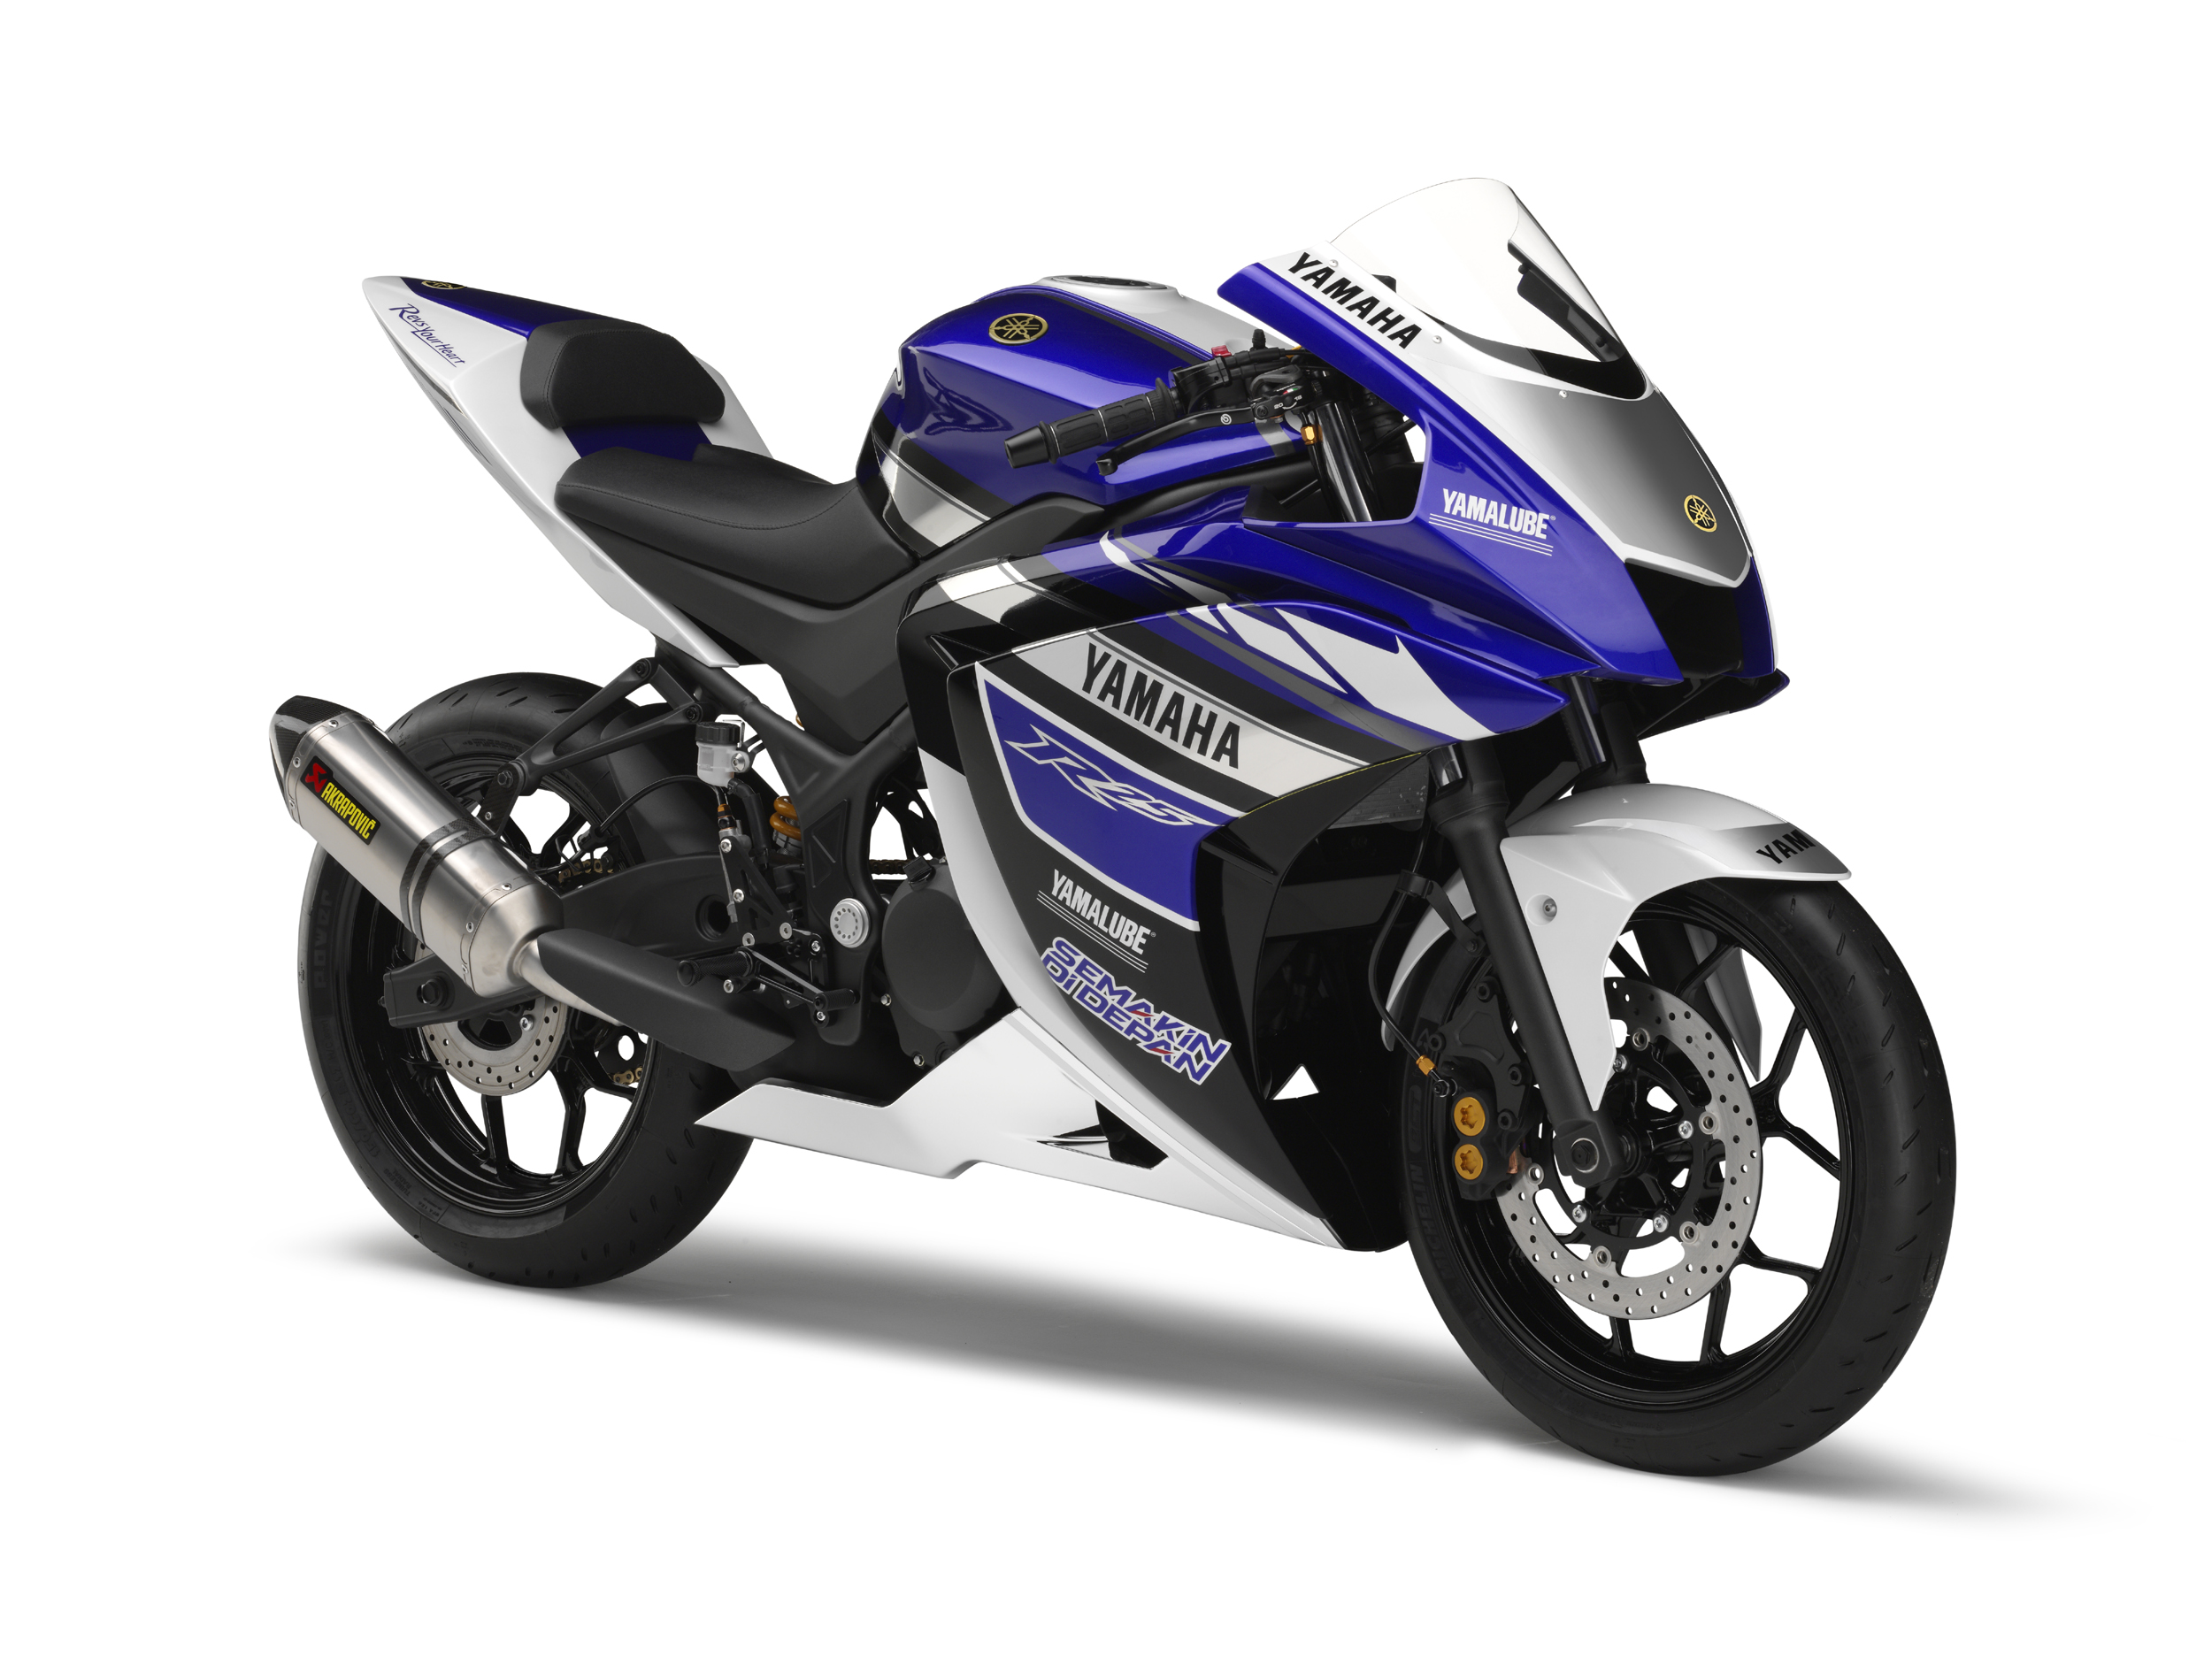 Yamaha R25 revealed at last | Visordown